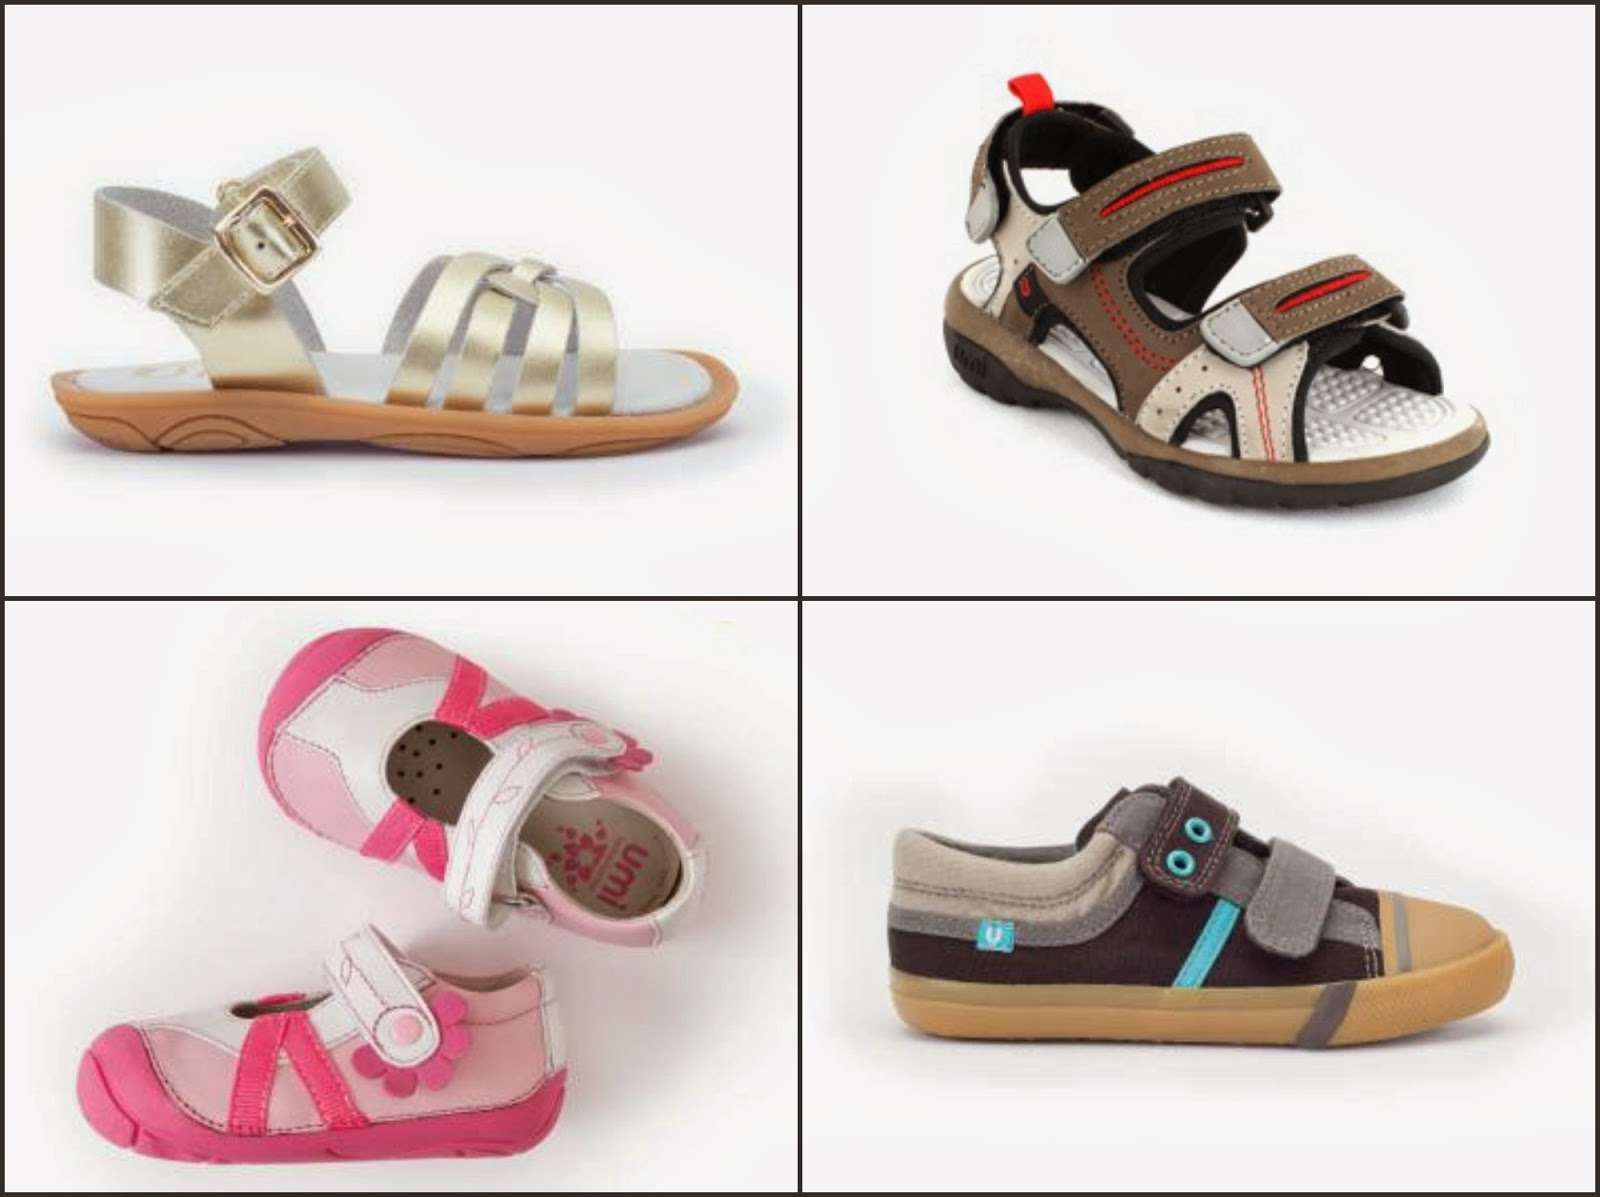 Umi kids shoes